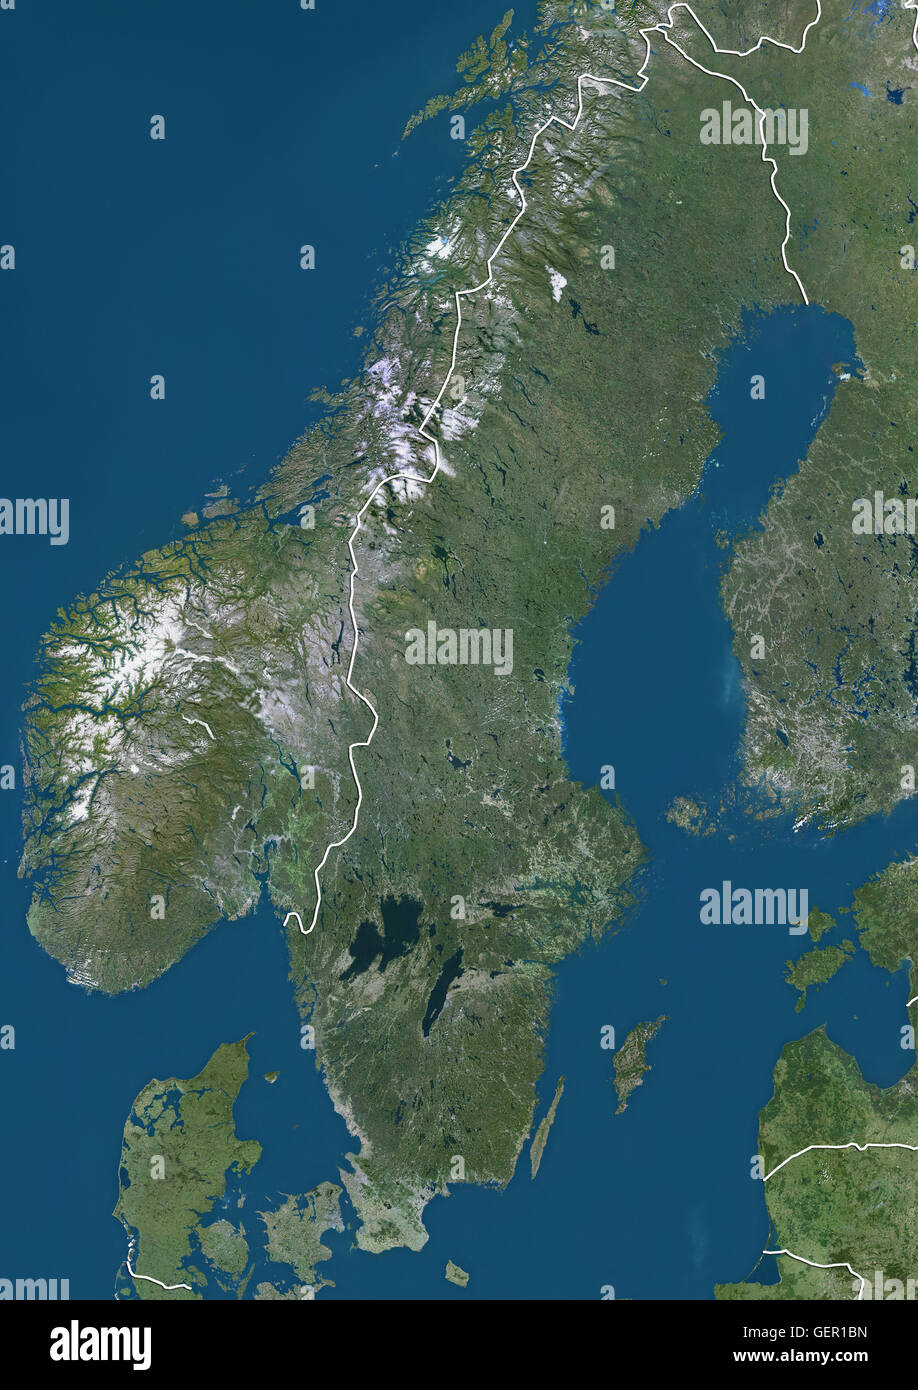 Satellite View Of Sweden With Country Boundaries This Image Was - Sweden map satellite